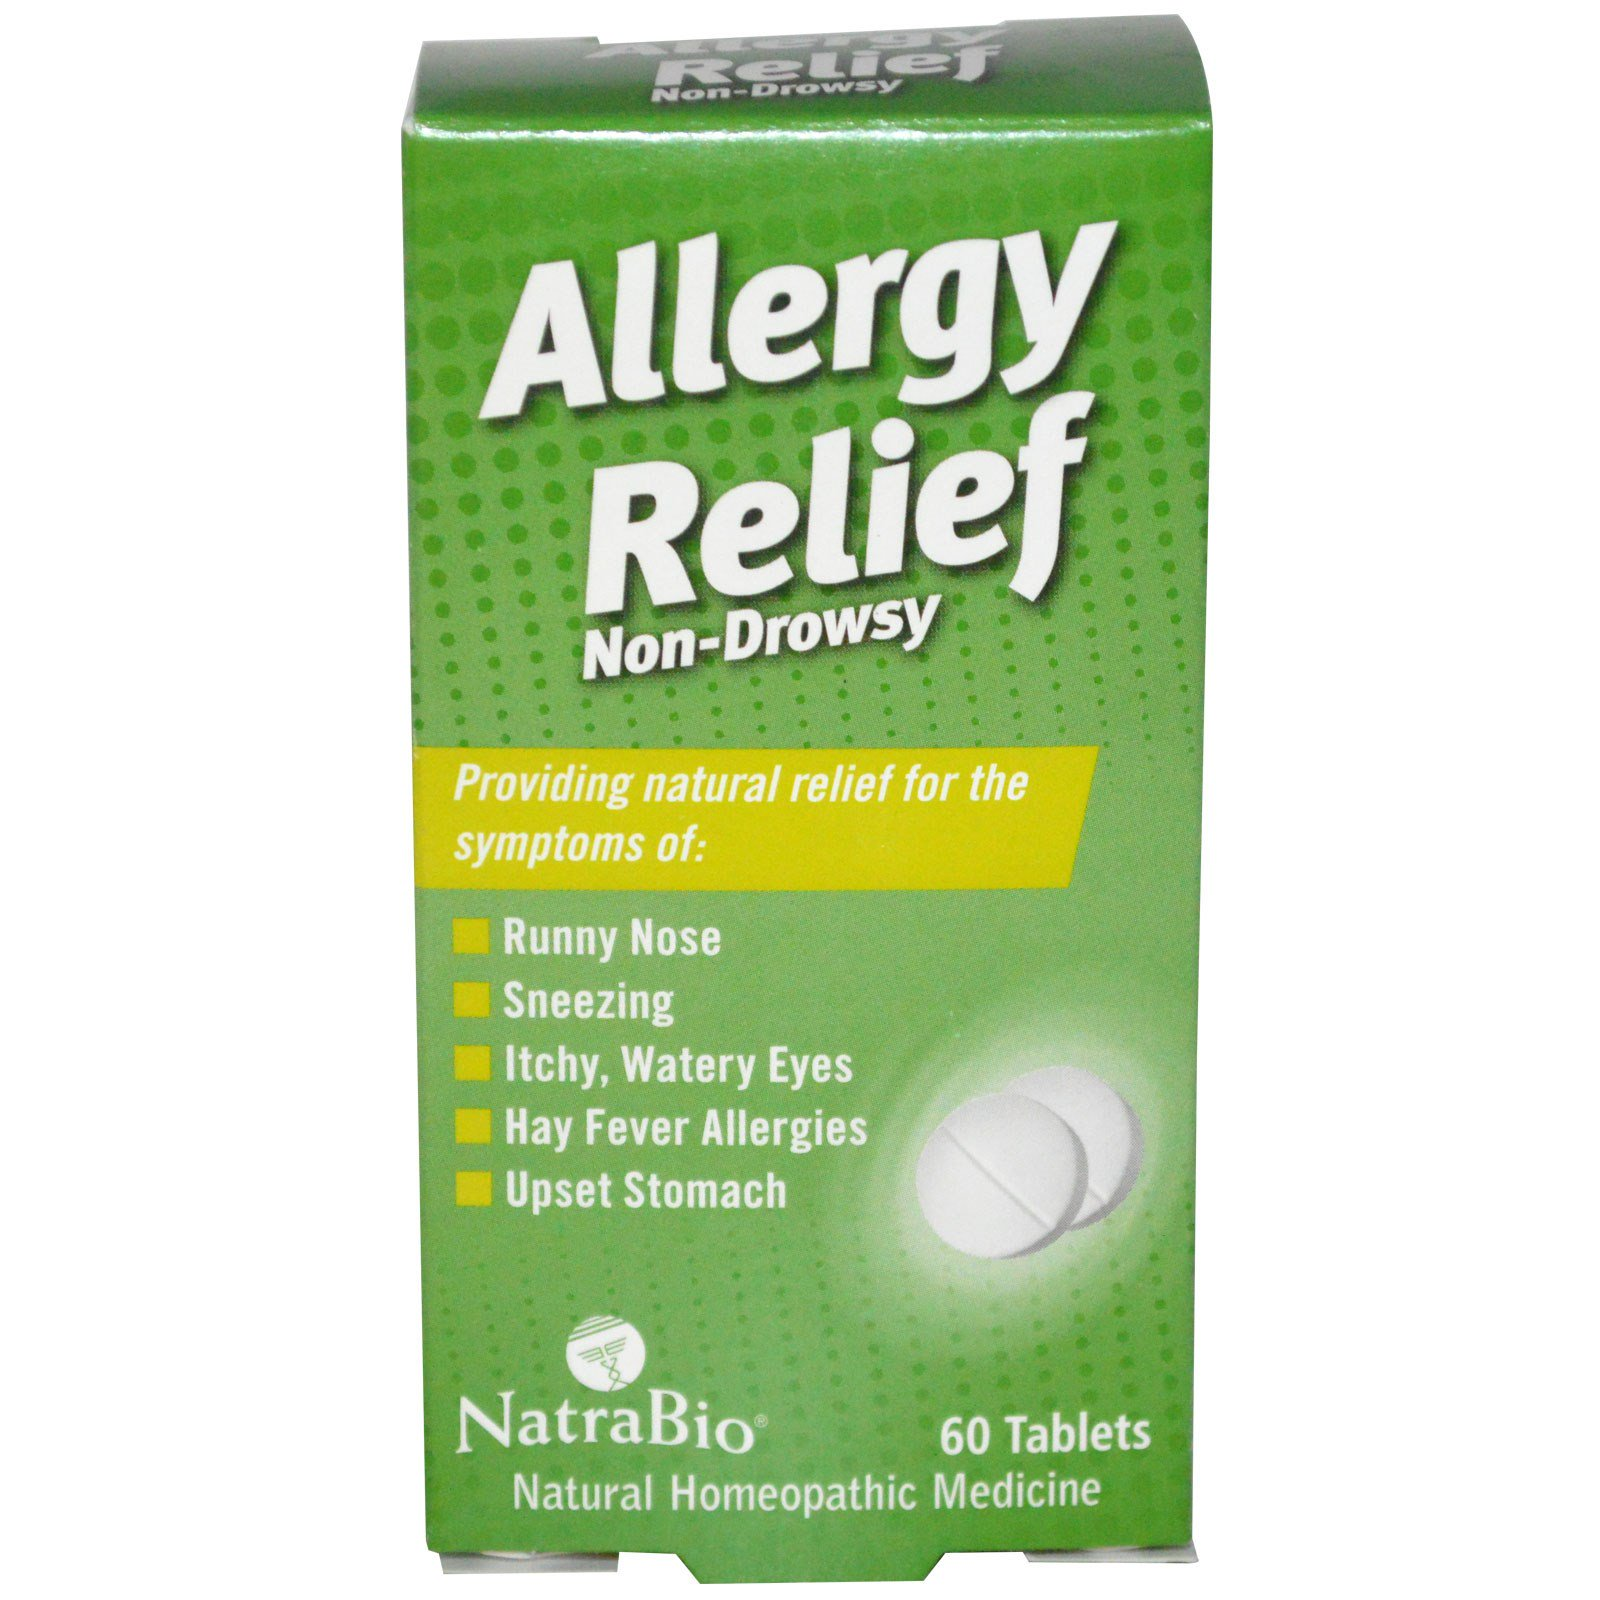 Natrabio Allergy Relief Non Drowsy 60 Tablets Herbs Of Gold Breastfeeding Support